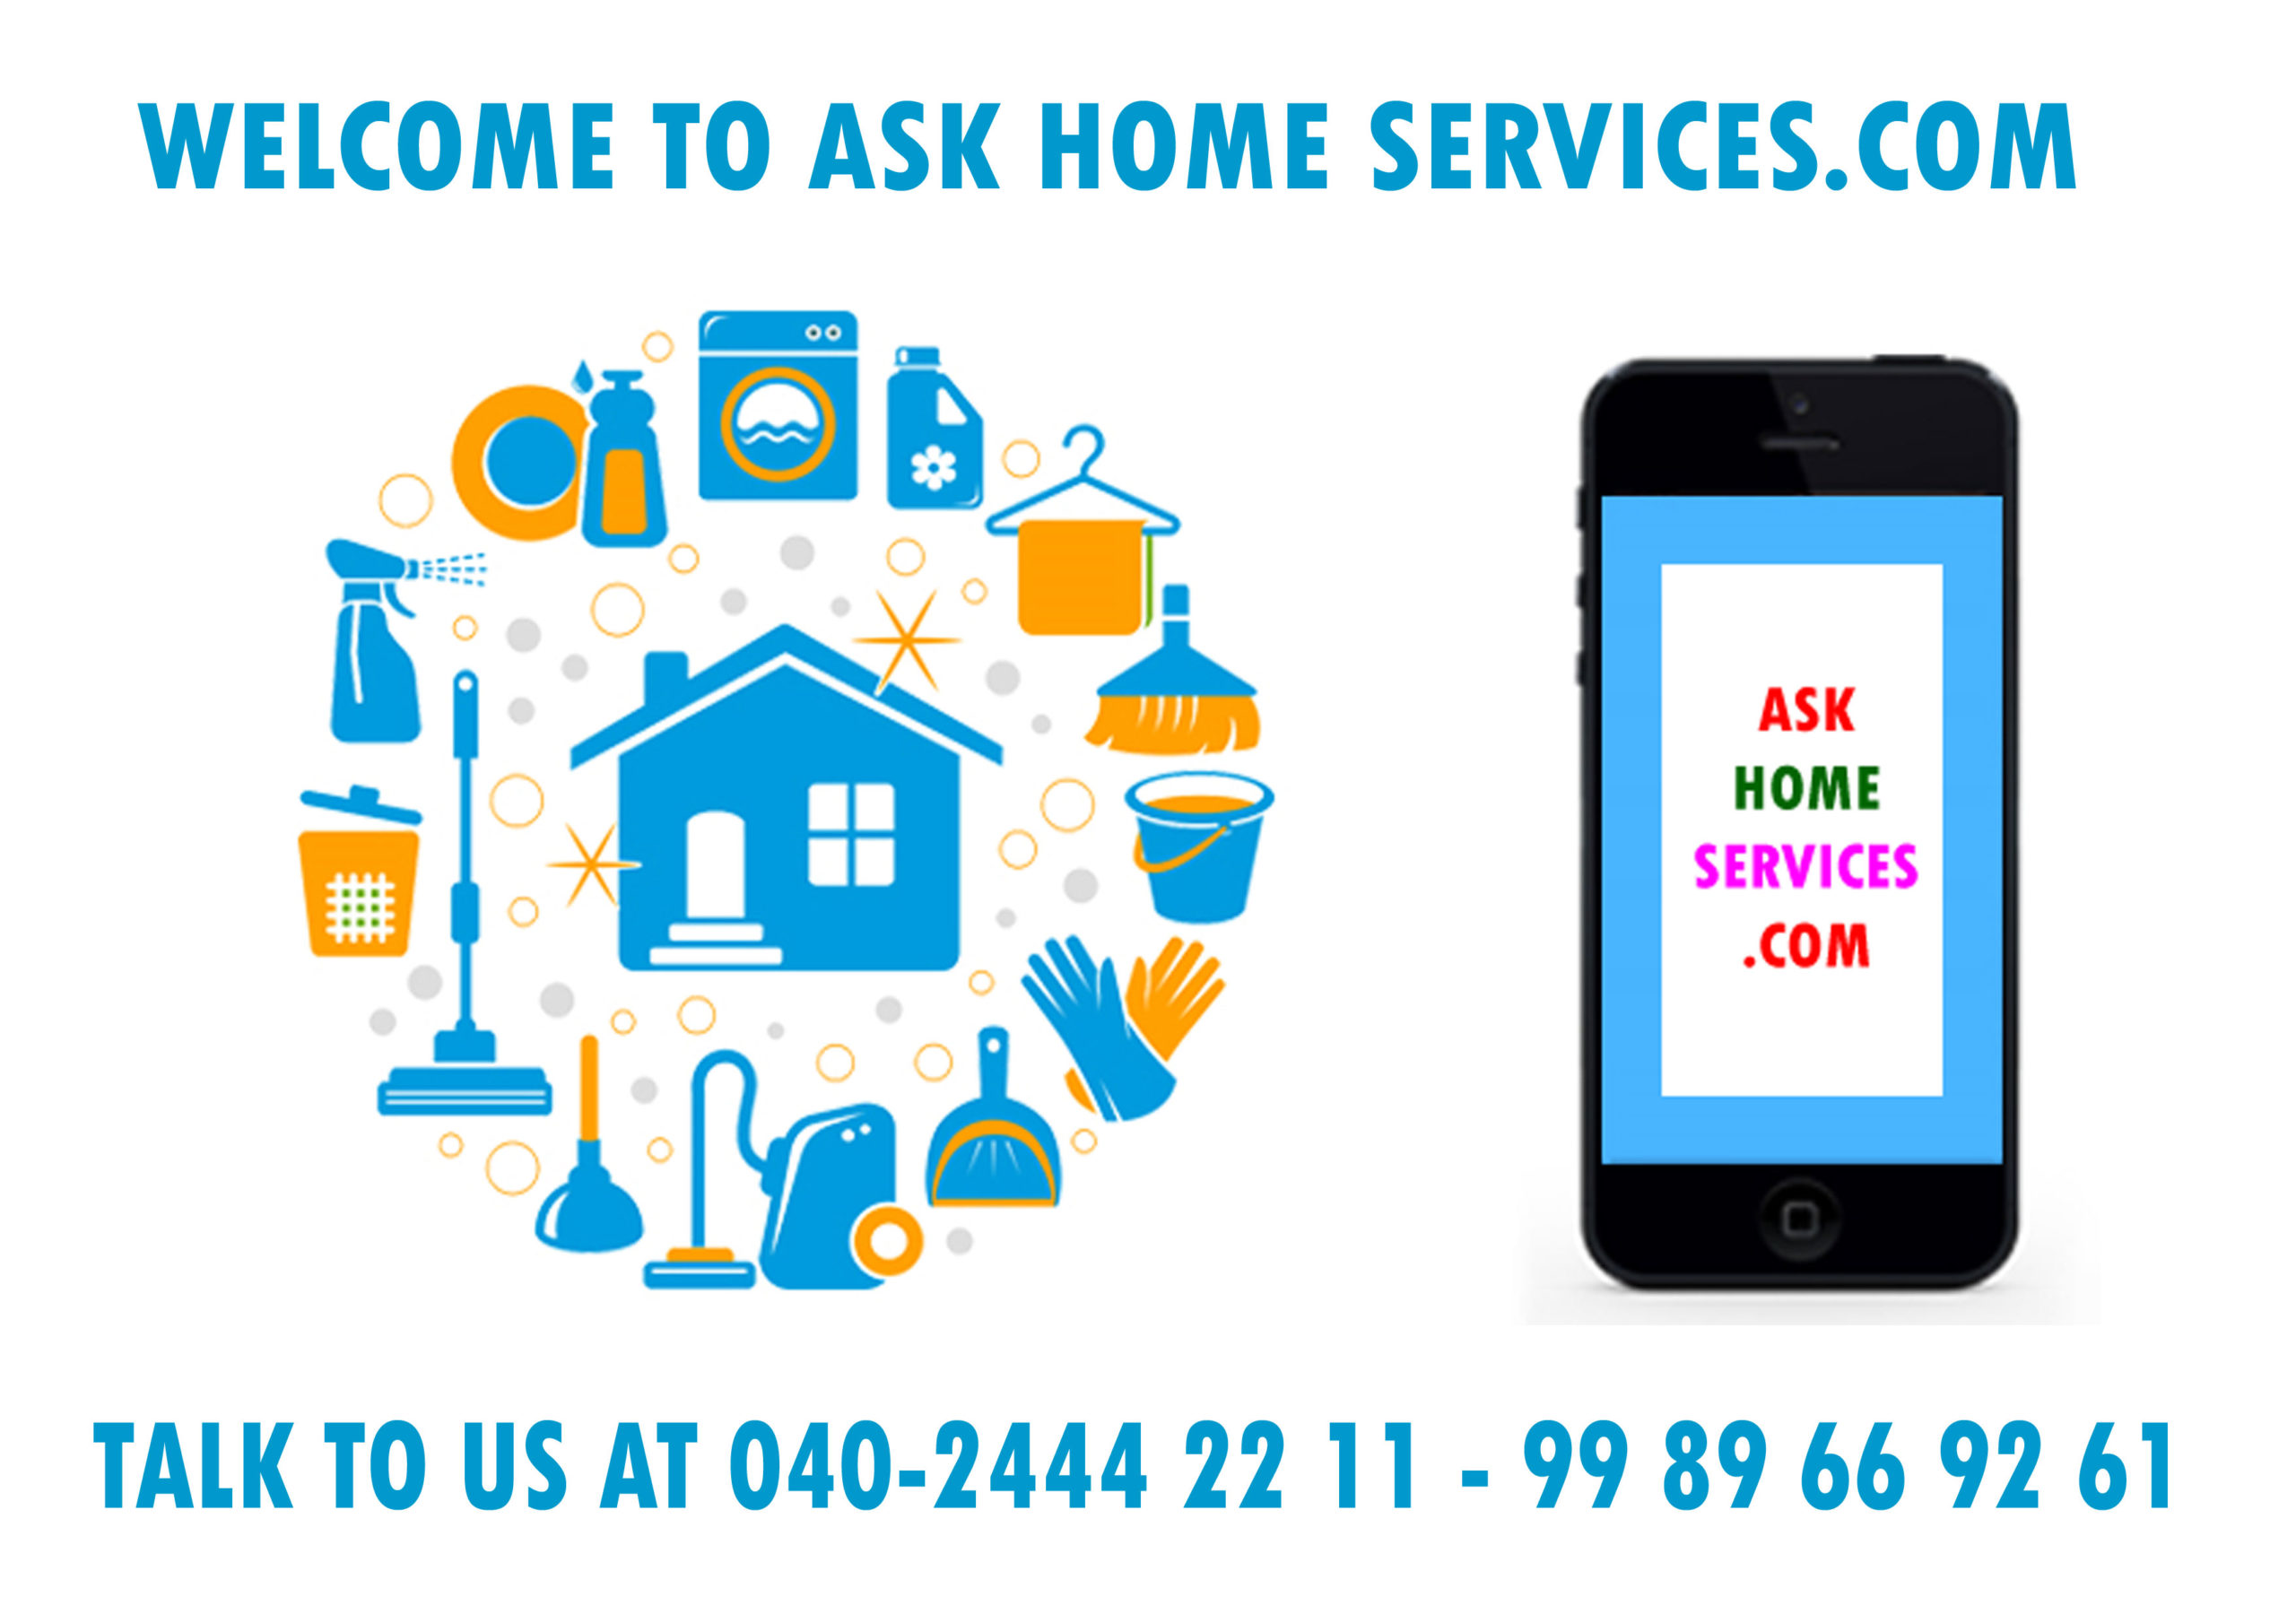 HOMESERVICES